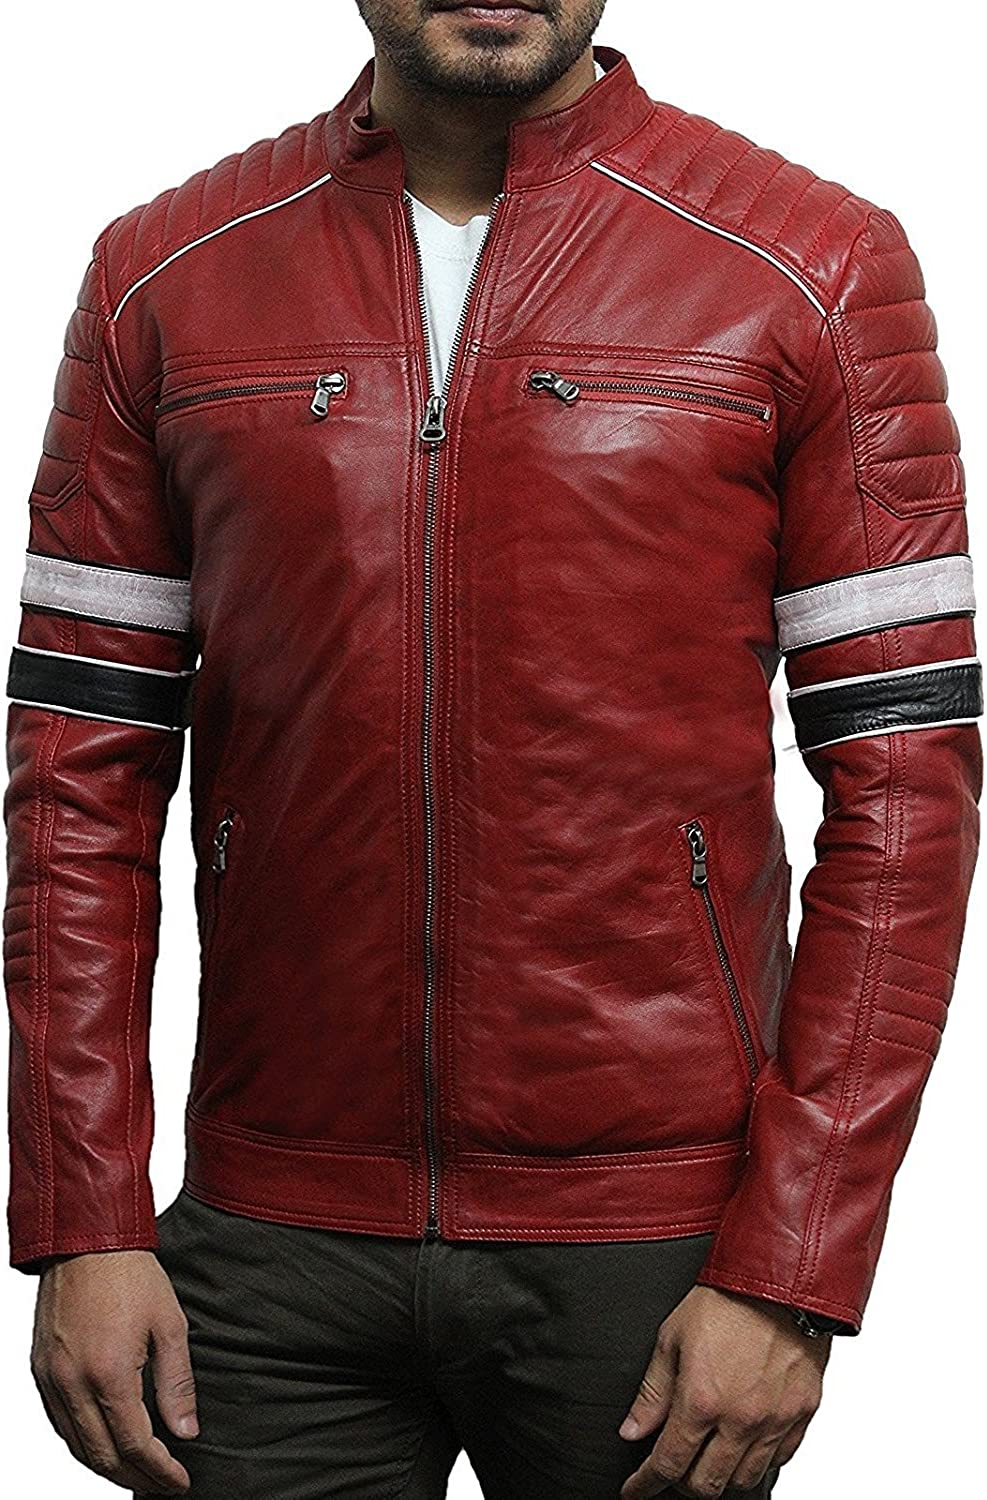 ABSY Mens Leather Biker Racing Jacket Lambskin Bomber Casual Red